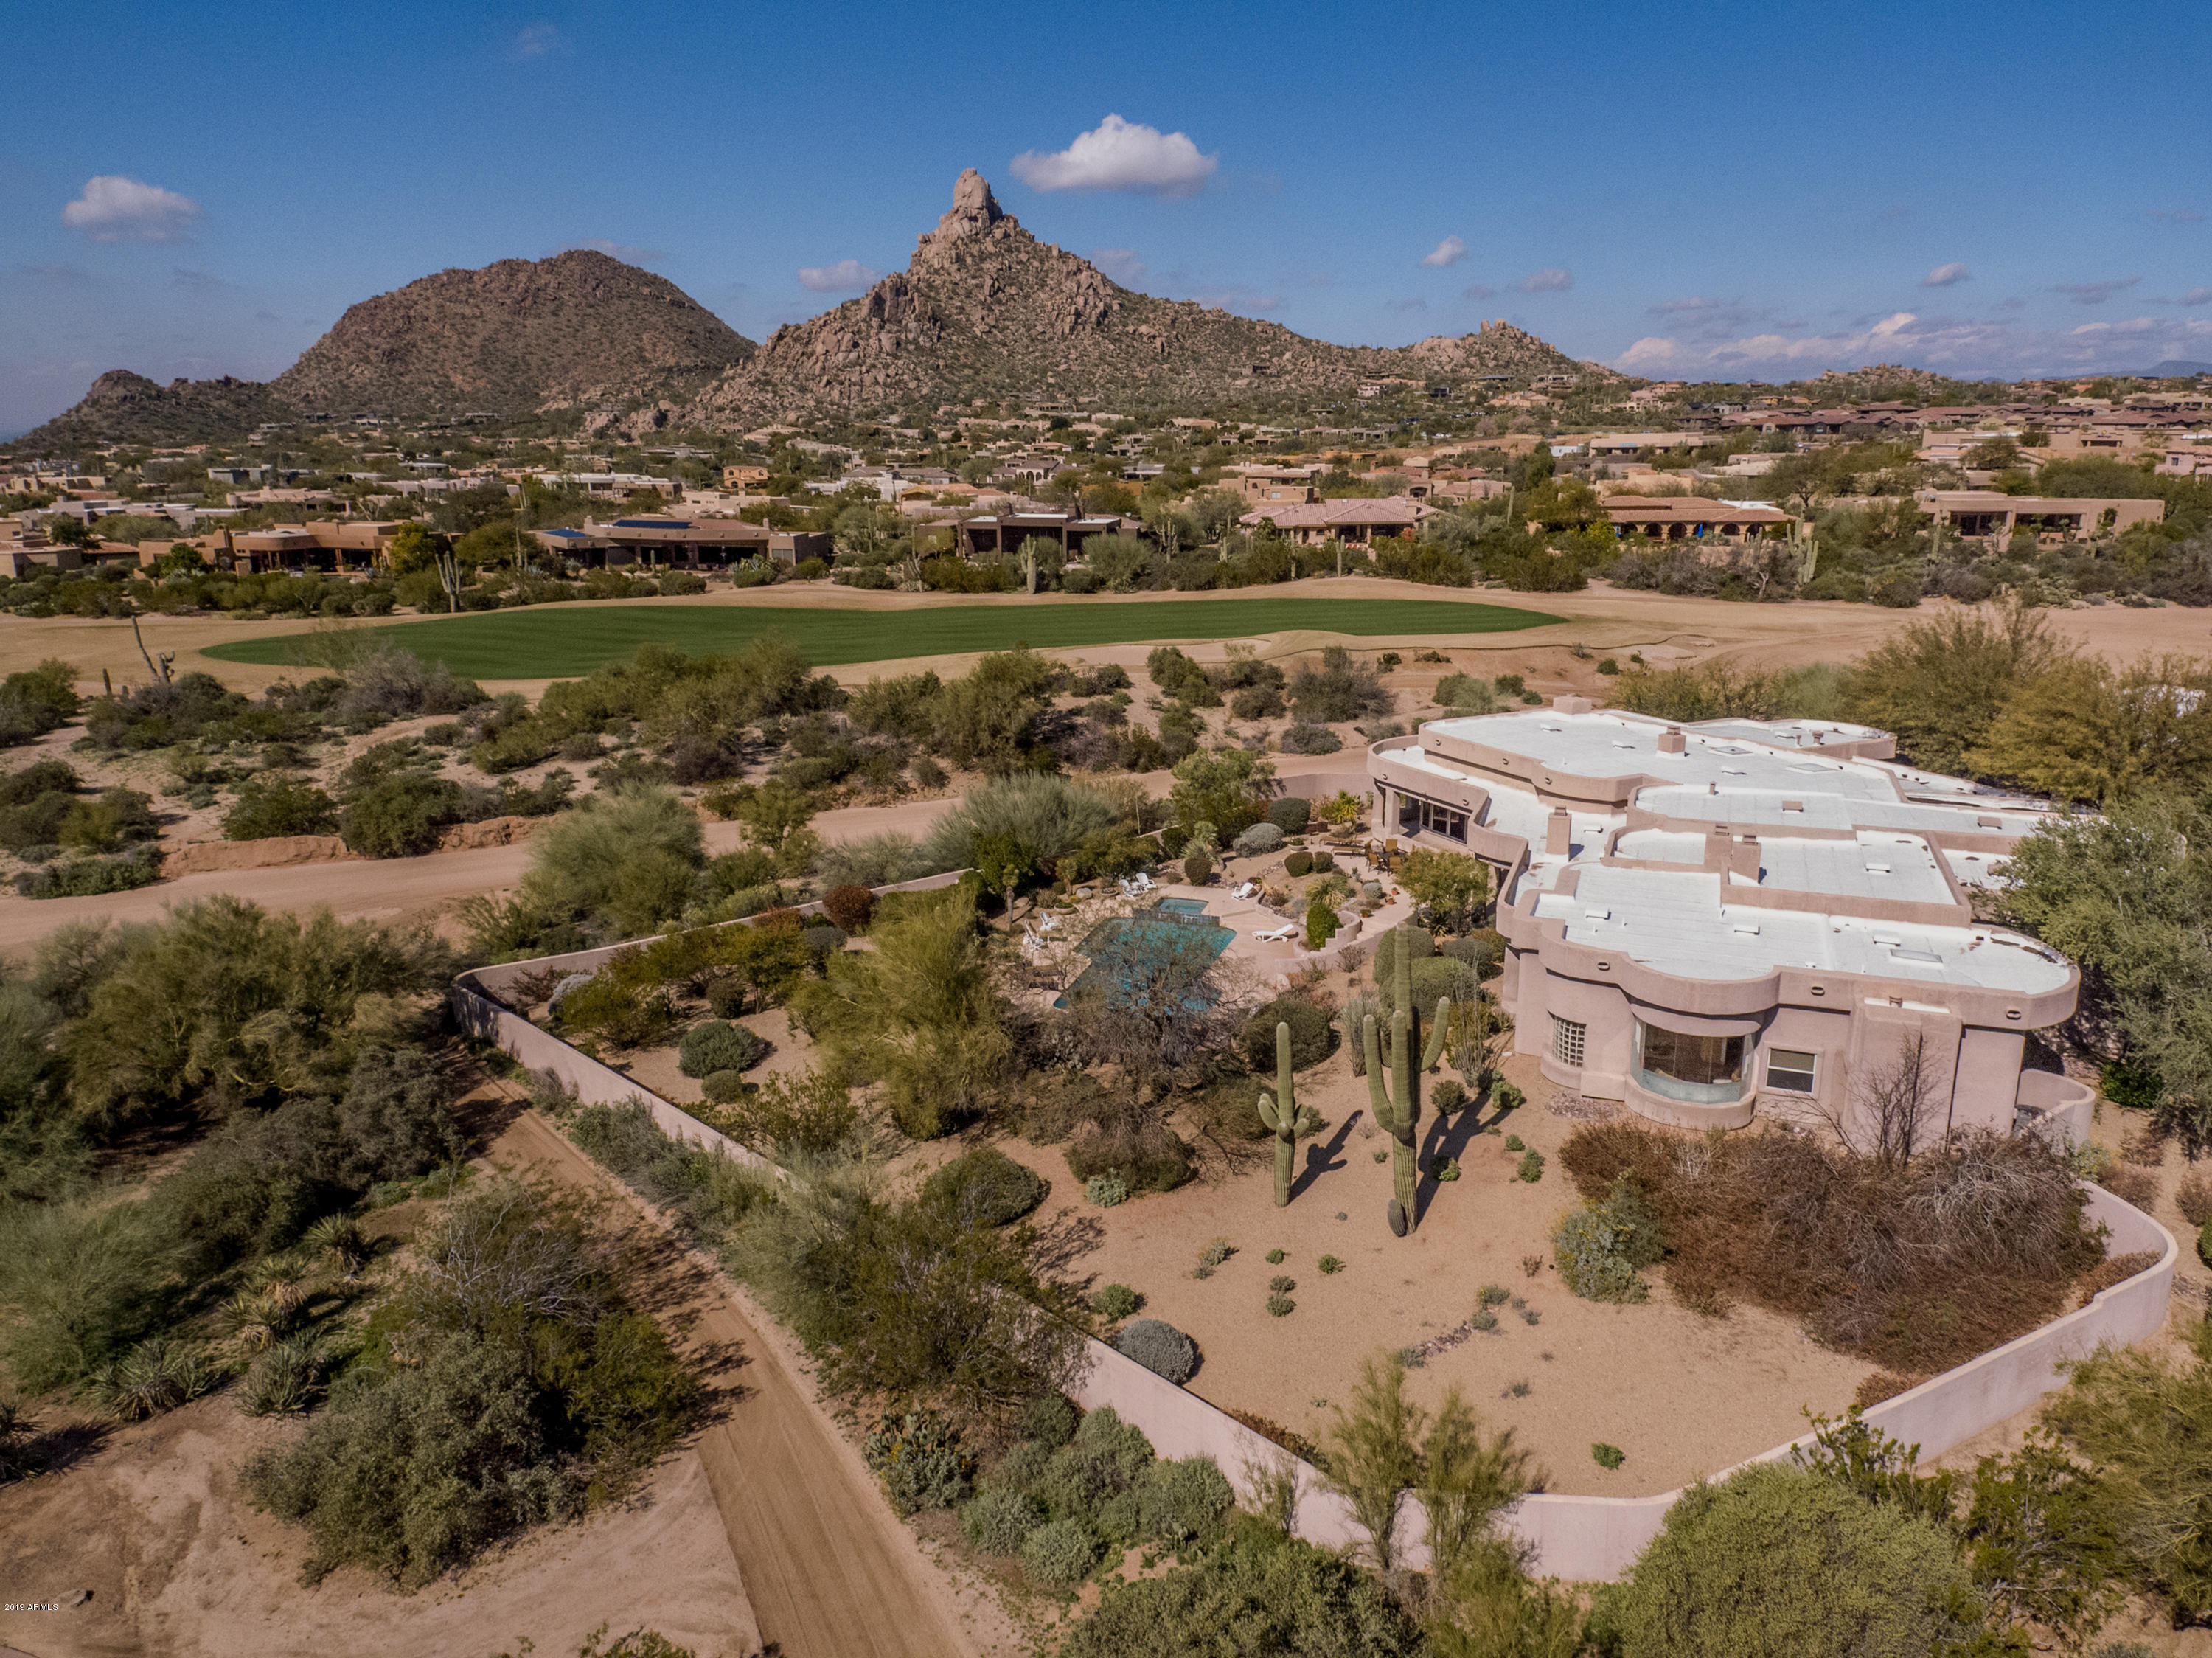 MLS 5887372 10600 E QUARTZ ROCK Road, Scottsdale, AZ 85255 Scottsdale AZ Troon Village